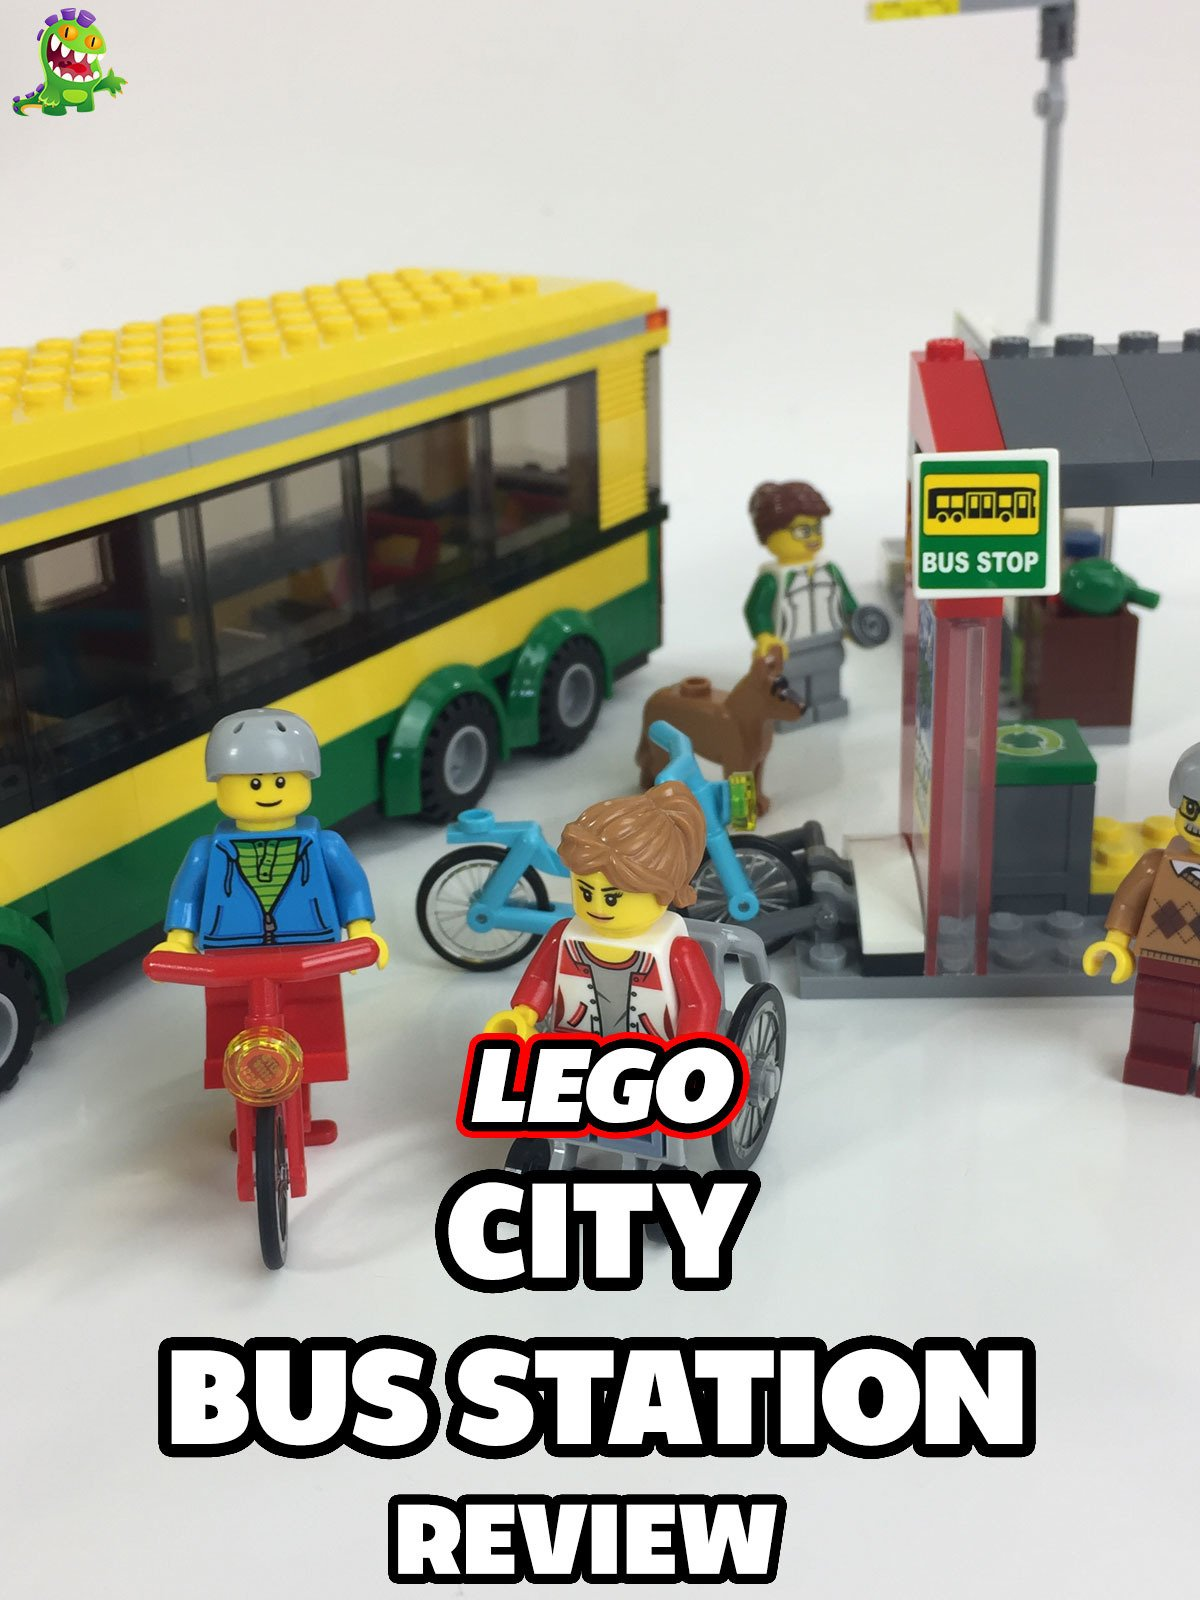 Review: Lego City Bus Station Review